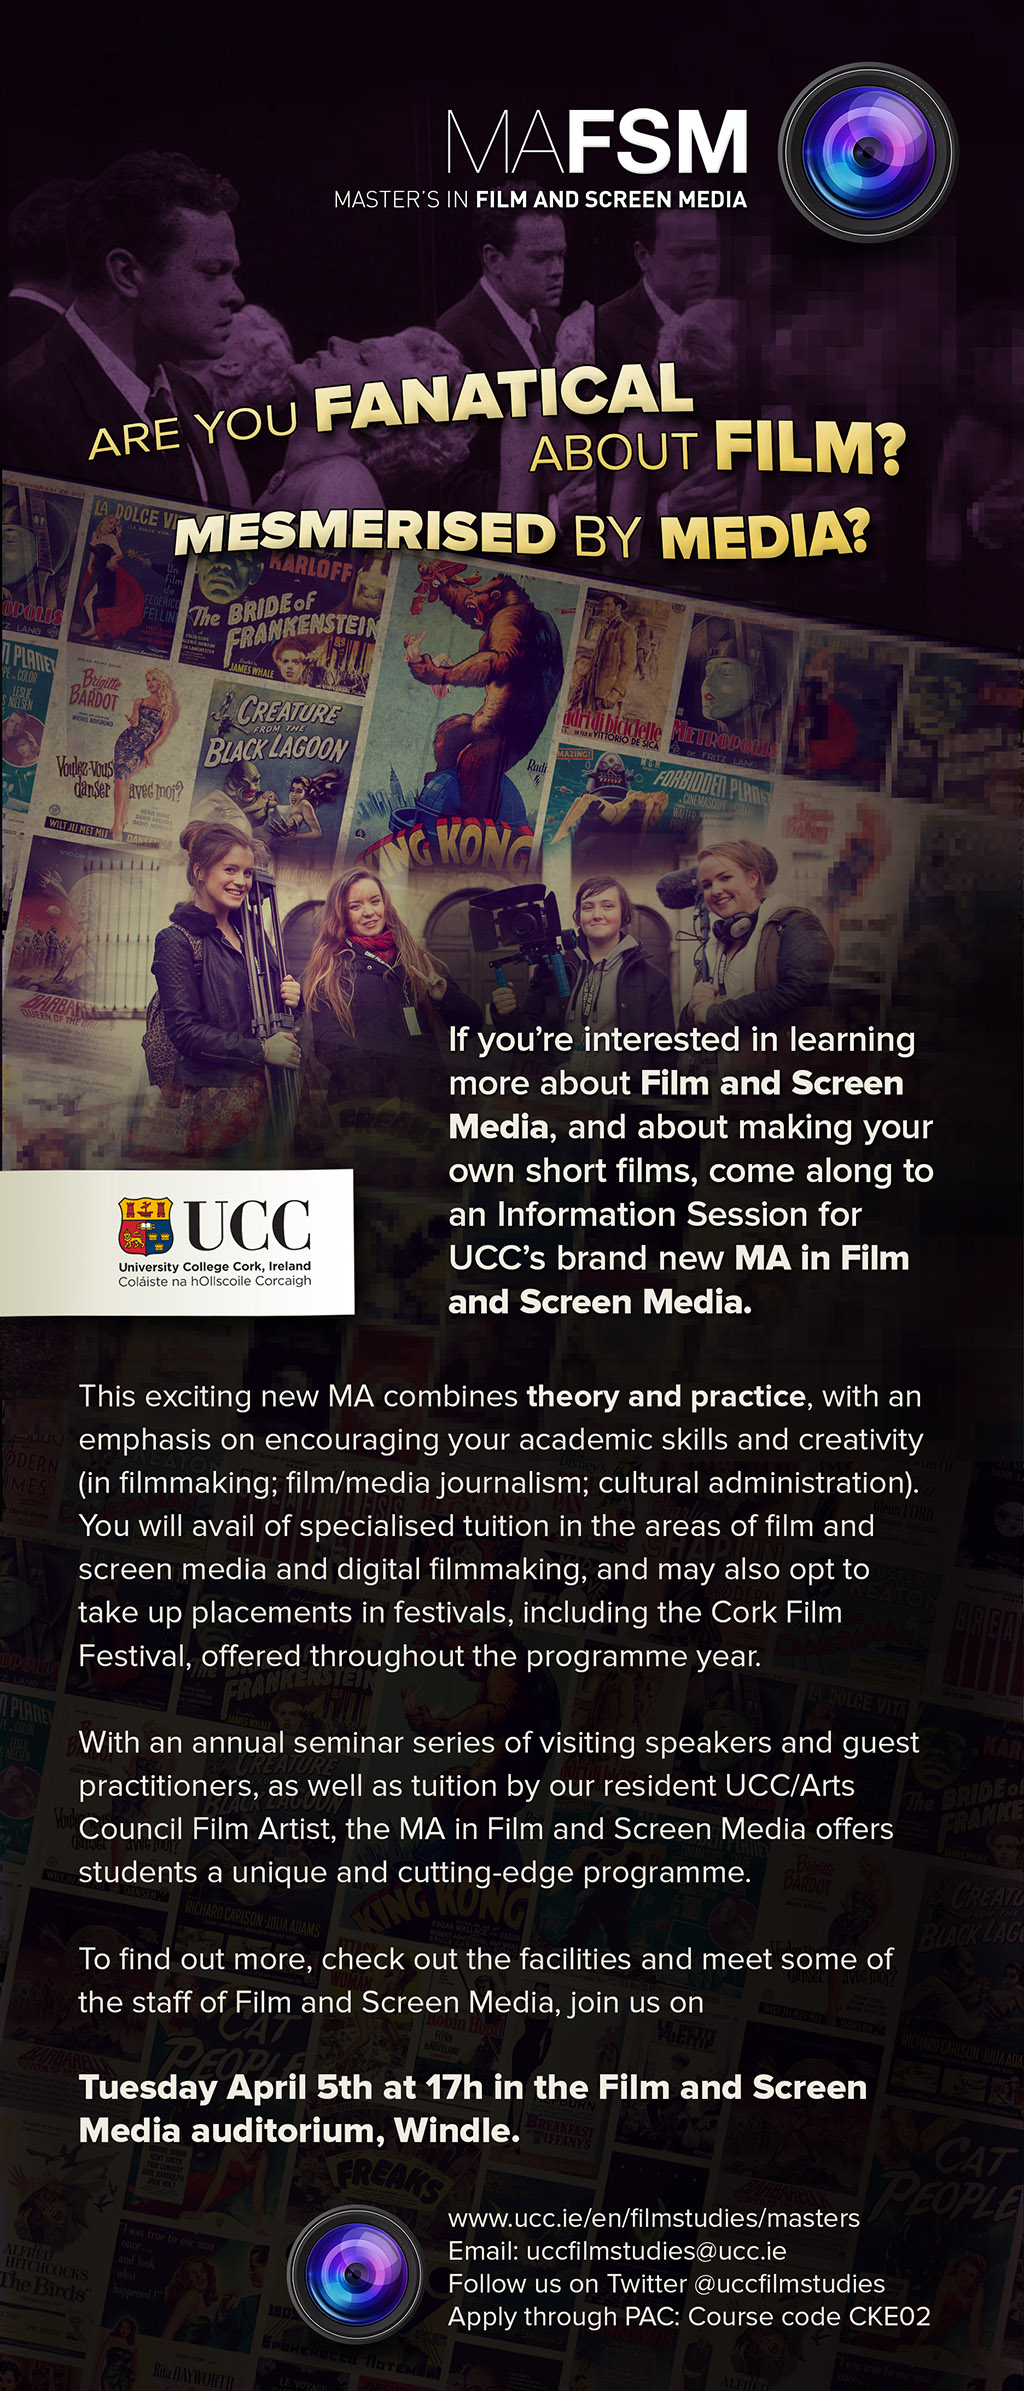 Information Session Tuesday 5th April, 5pm. Film & Screen Media Auditorium, Windle.